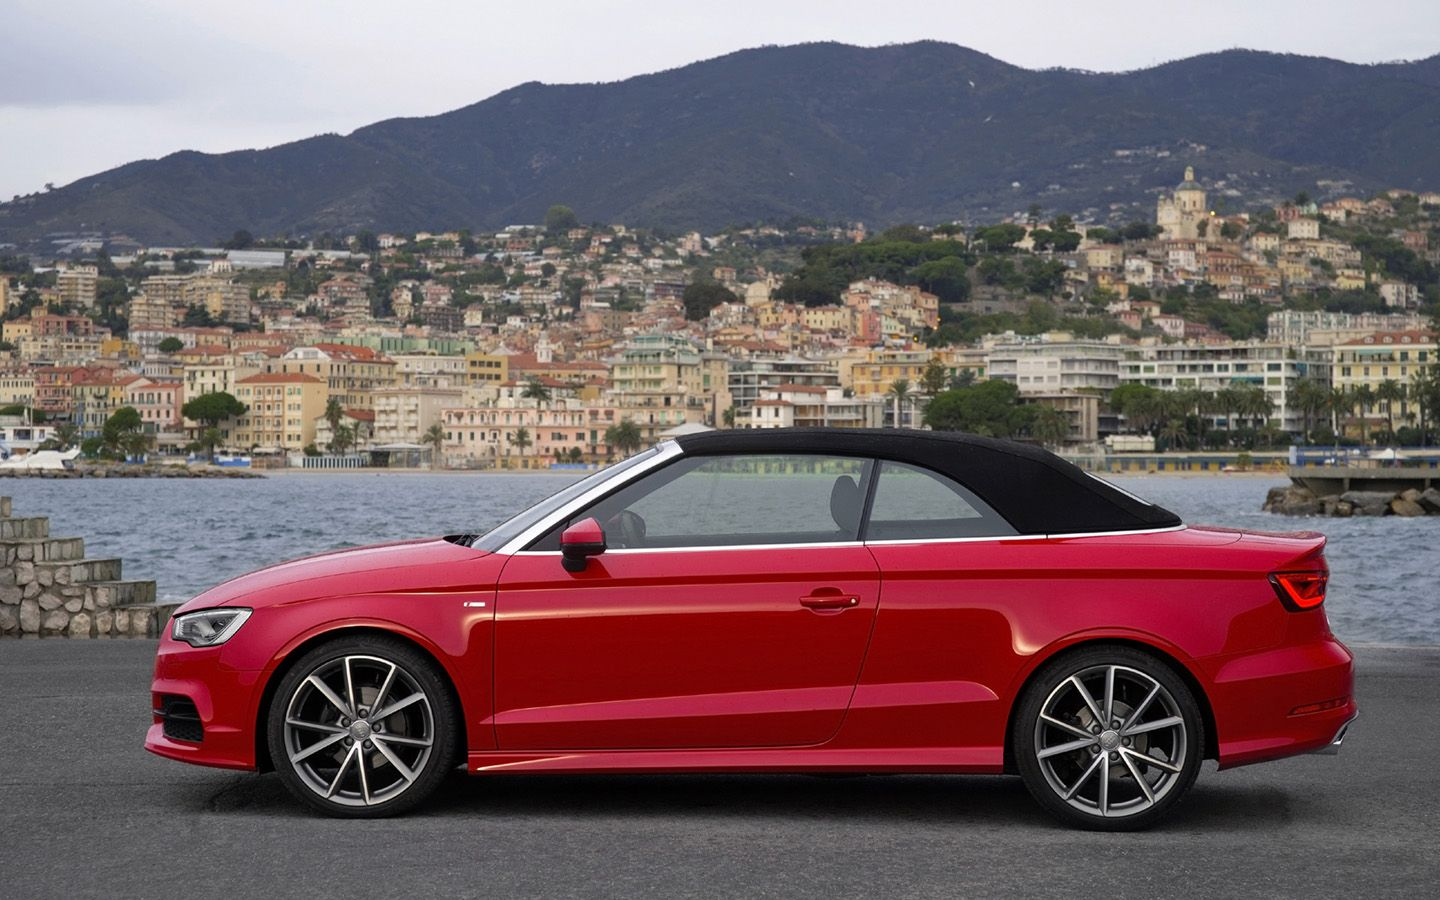 2014 Audi A3 Cabriolet Red Static 5 1440x900 Wallpaper A3 Cabriolet Audi A3 Cabriolet Audi A3